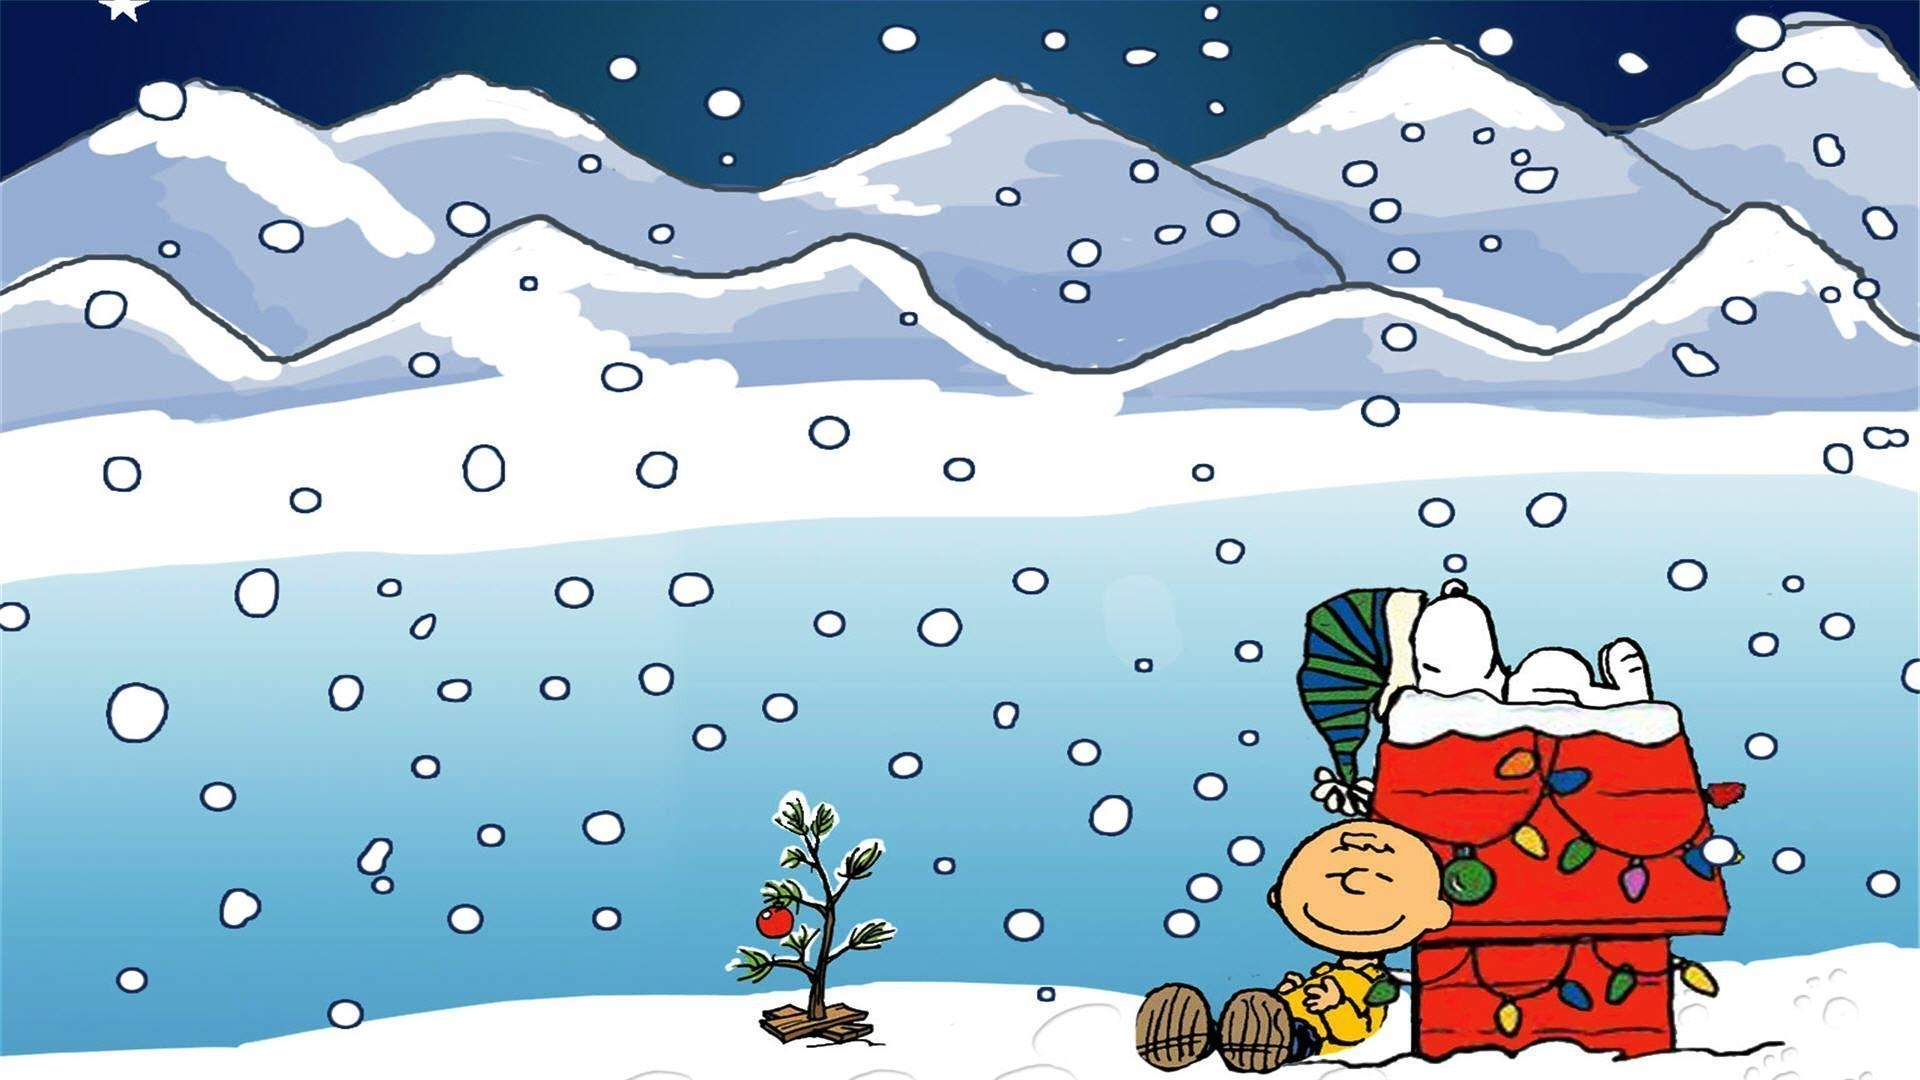 charlie brown christmas tree wallpapers - wallpaper cave